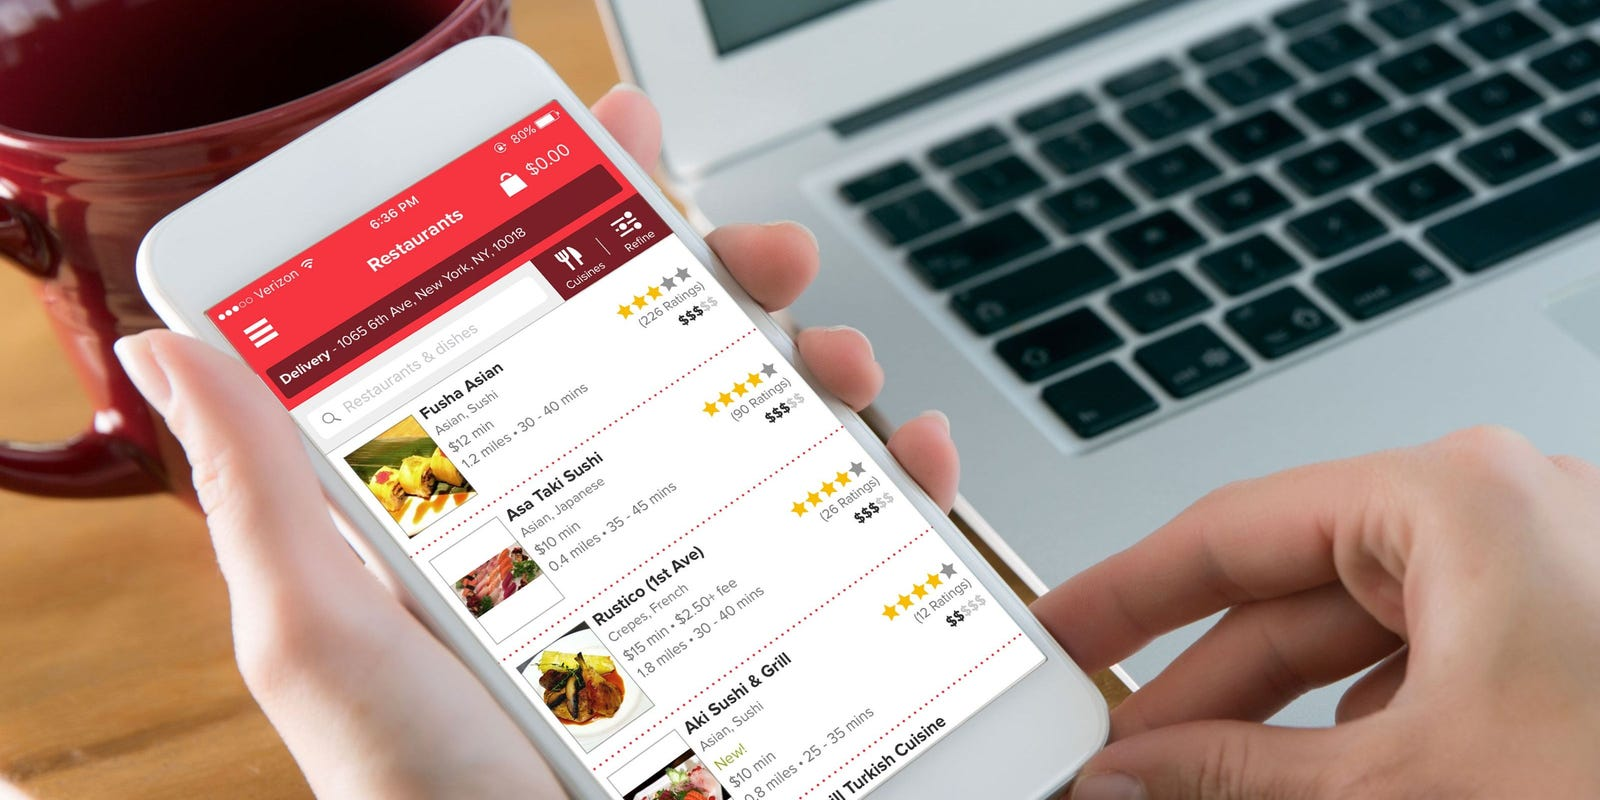 GrubHub shares surge off reports of acquisition offer by Uber